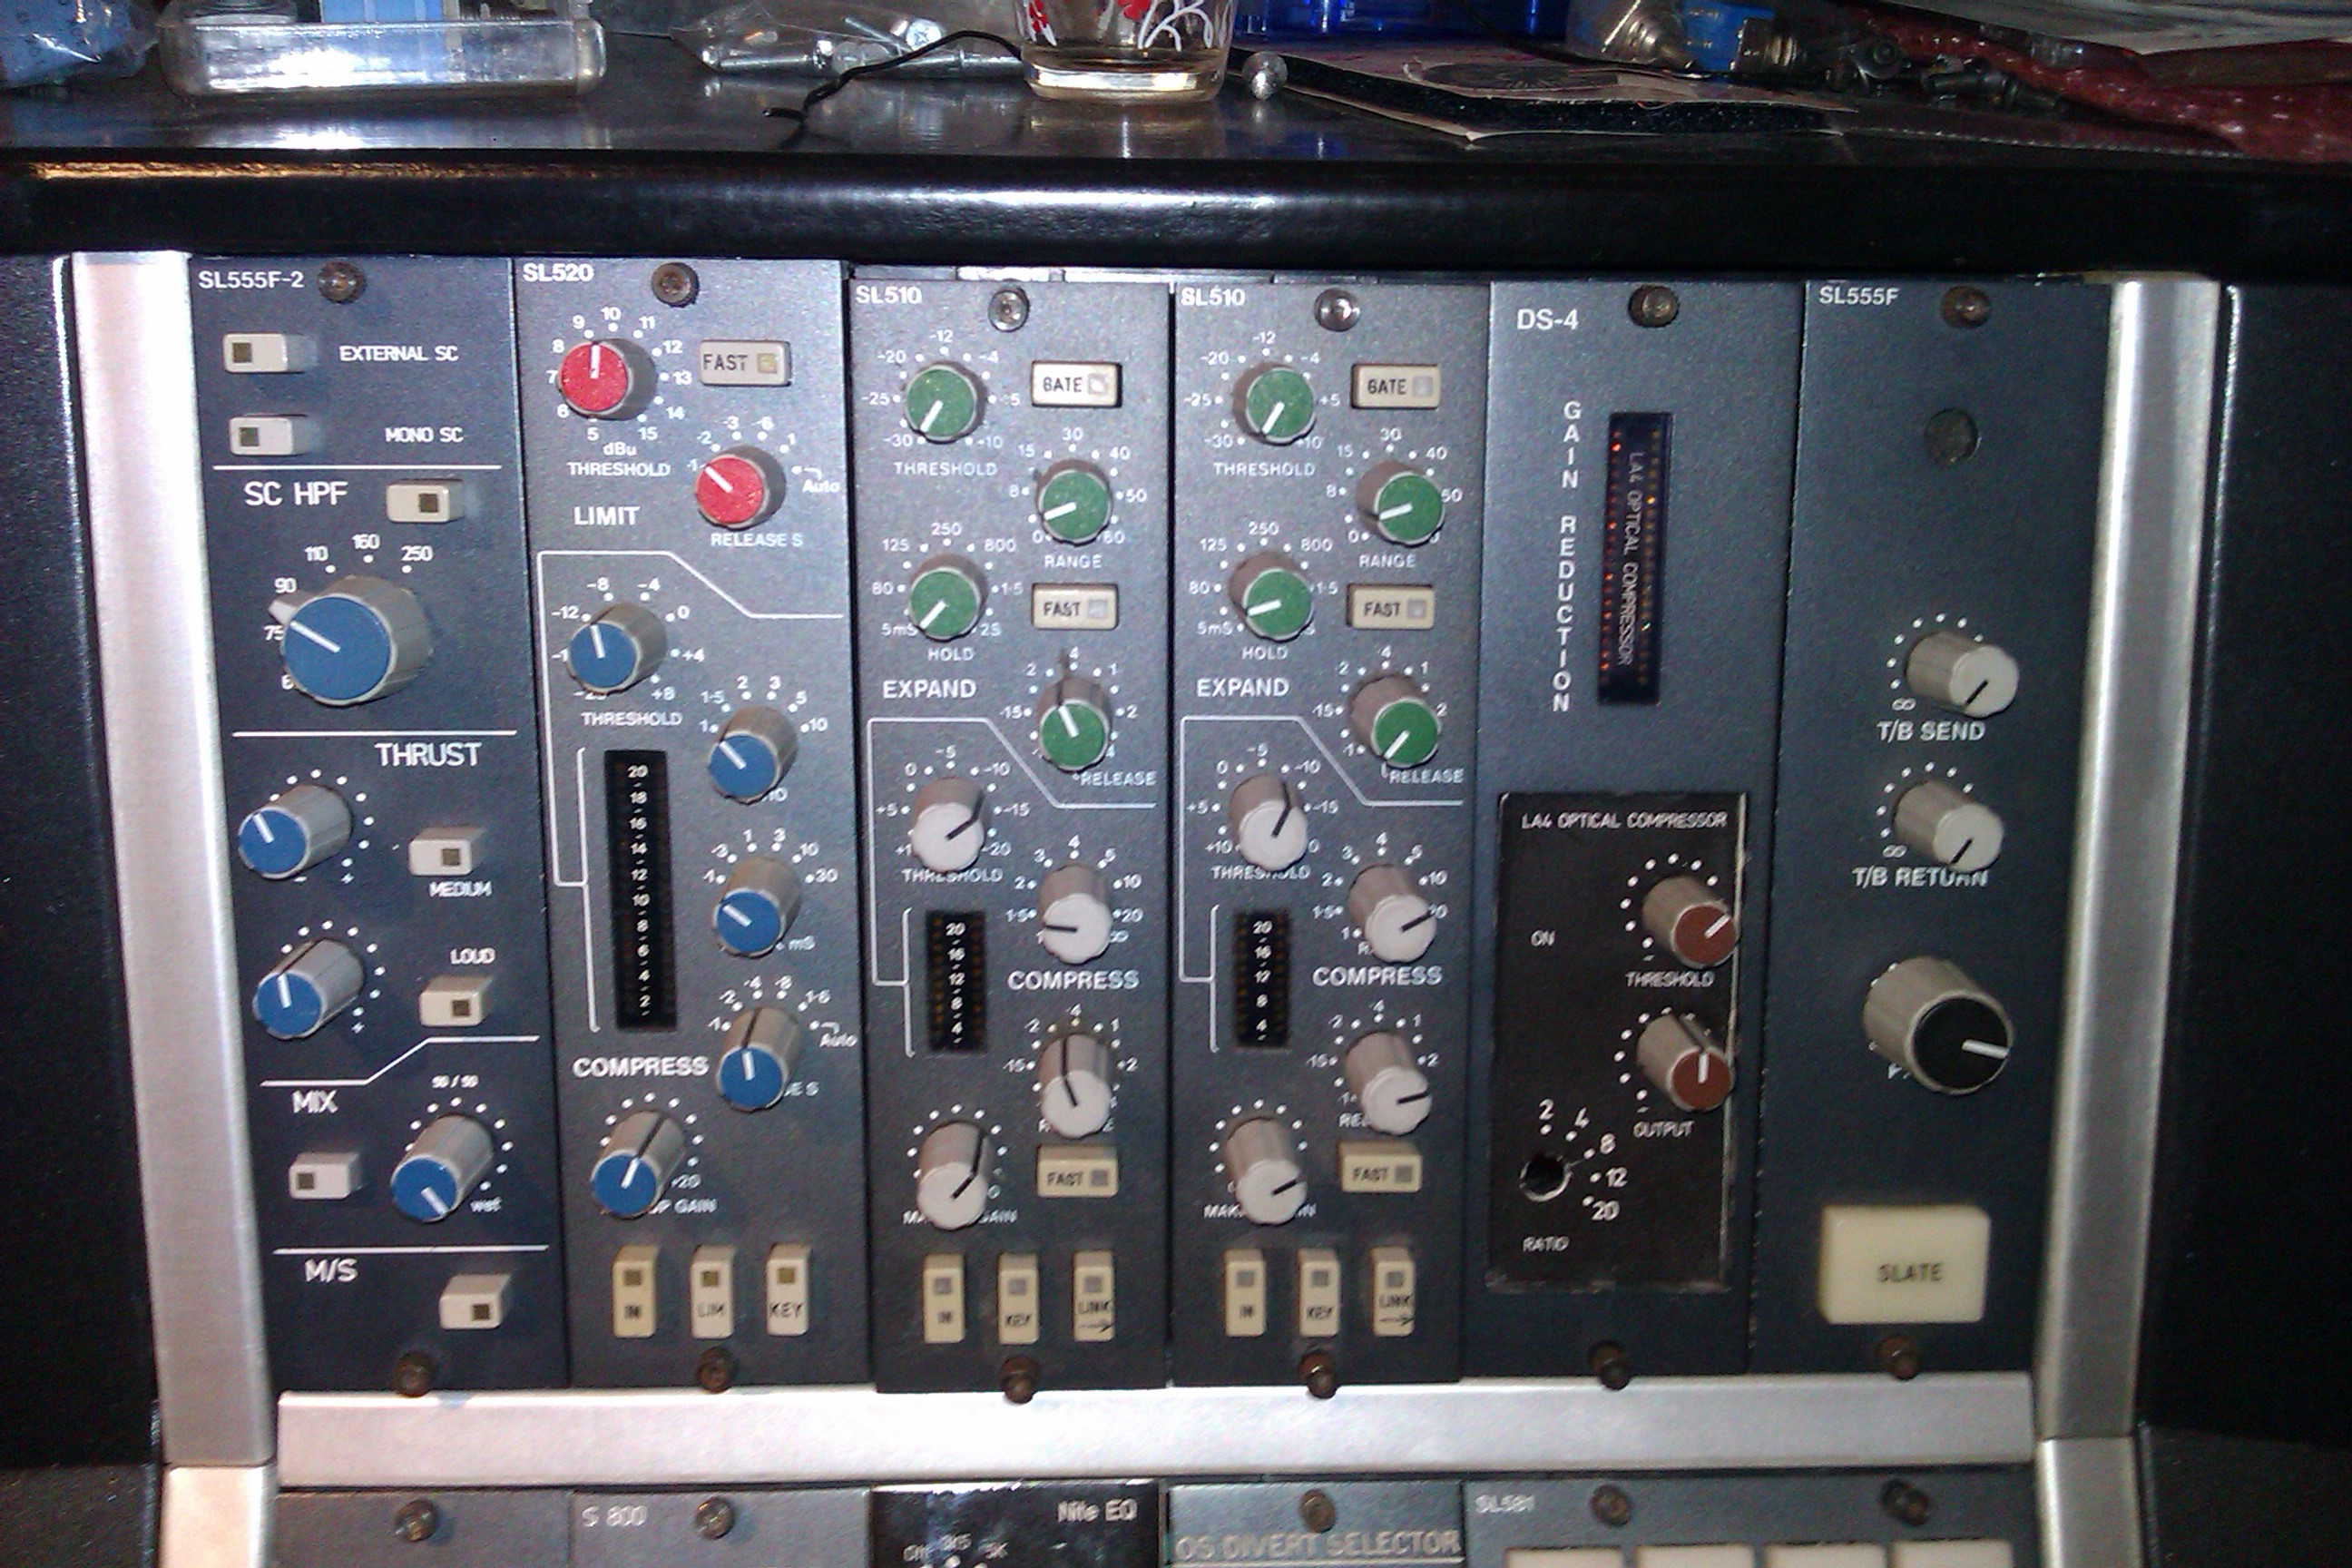 fltr : custom Sidechain driver for the 520 compressor, SSL 520 compressor (original) 2x SSL 510 compressors (original), La4a custom cassette, modified LMC compressor cassette